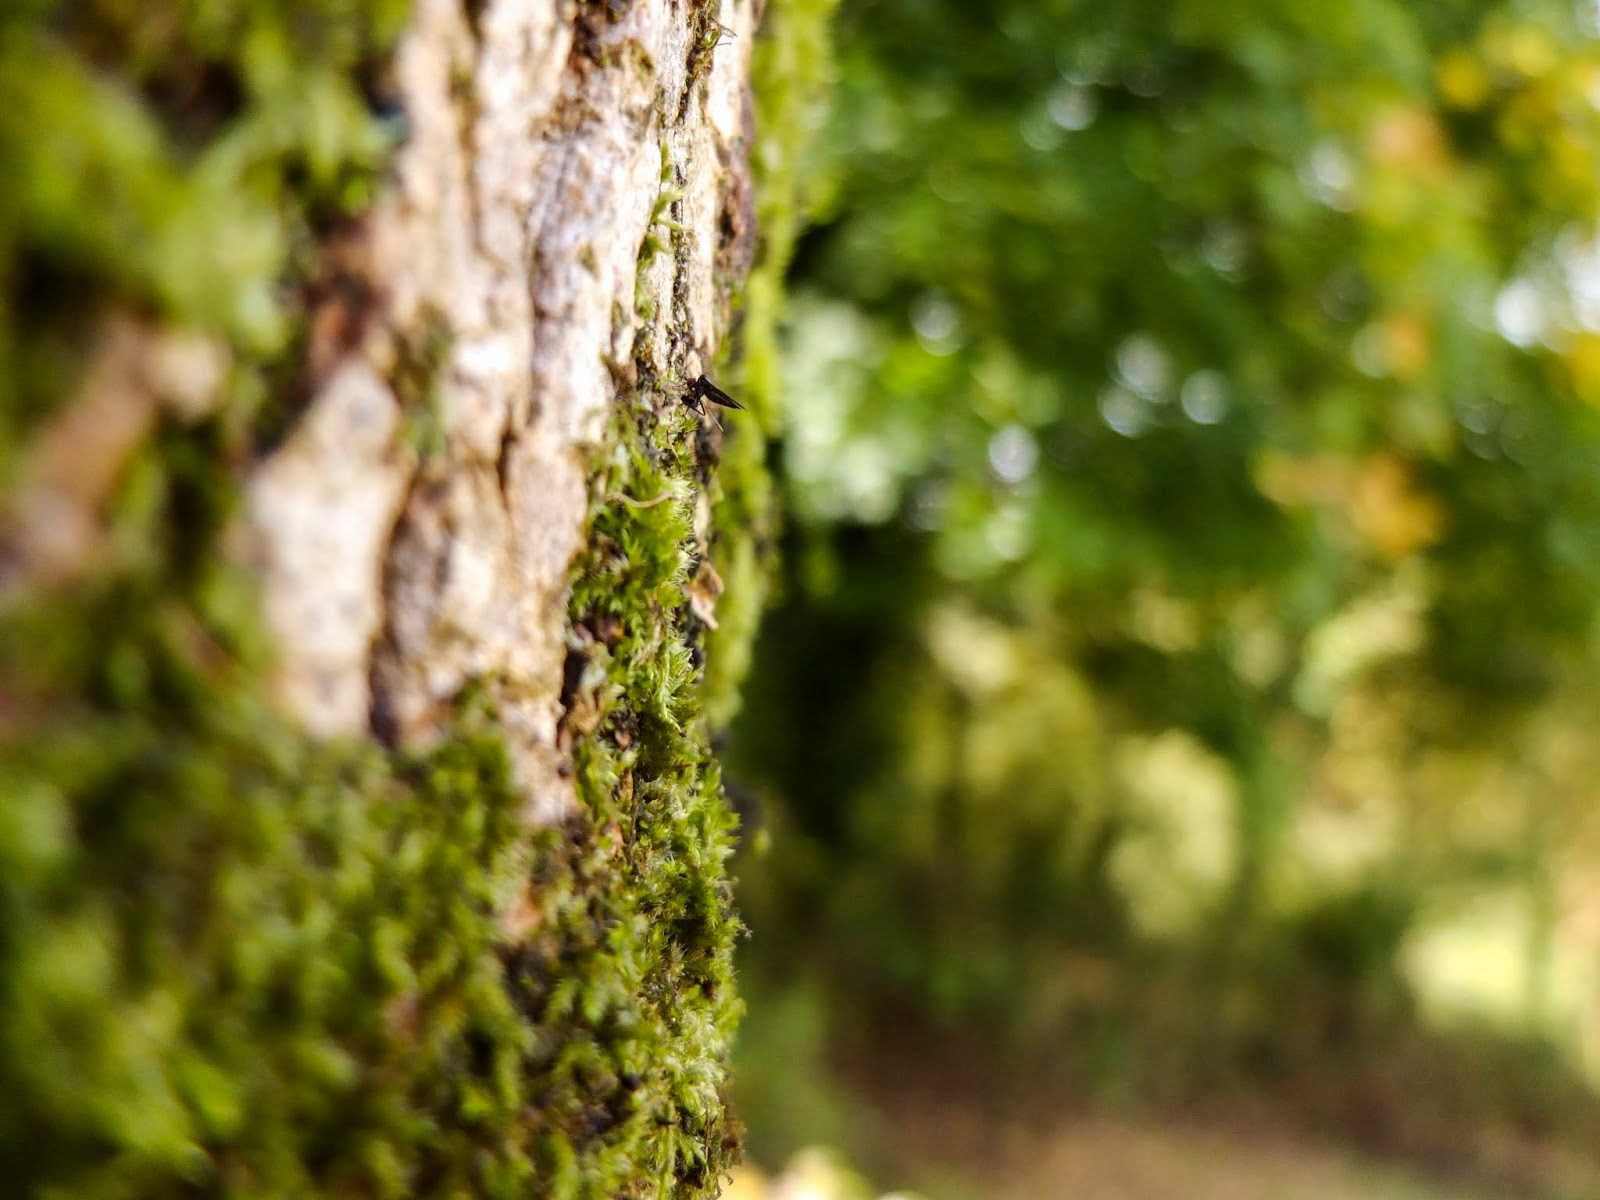 A macro image of moss growing on a Maple tree trunk.